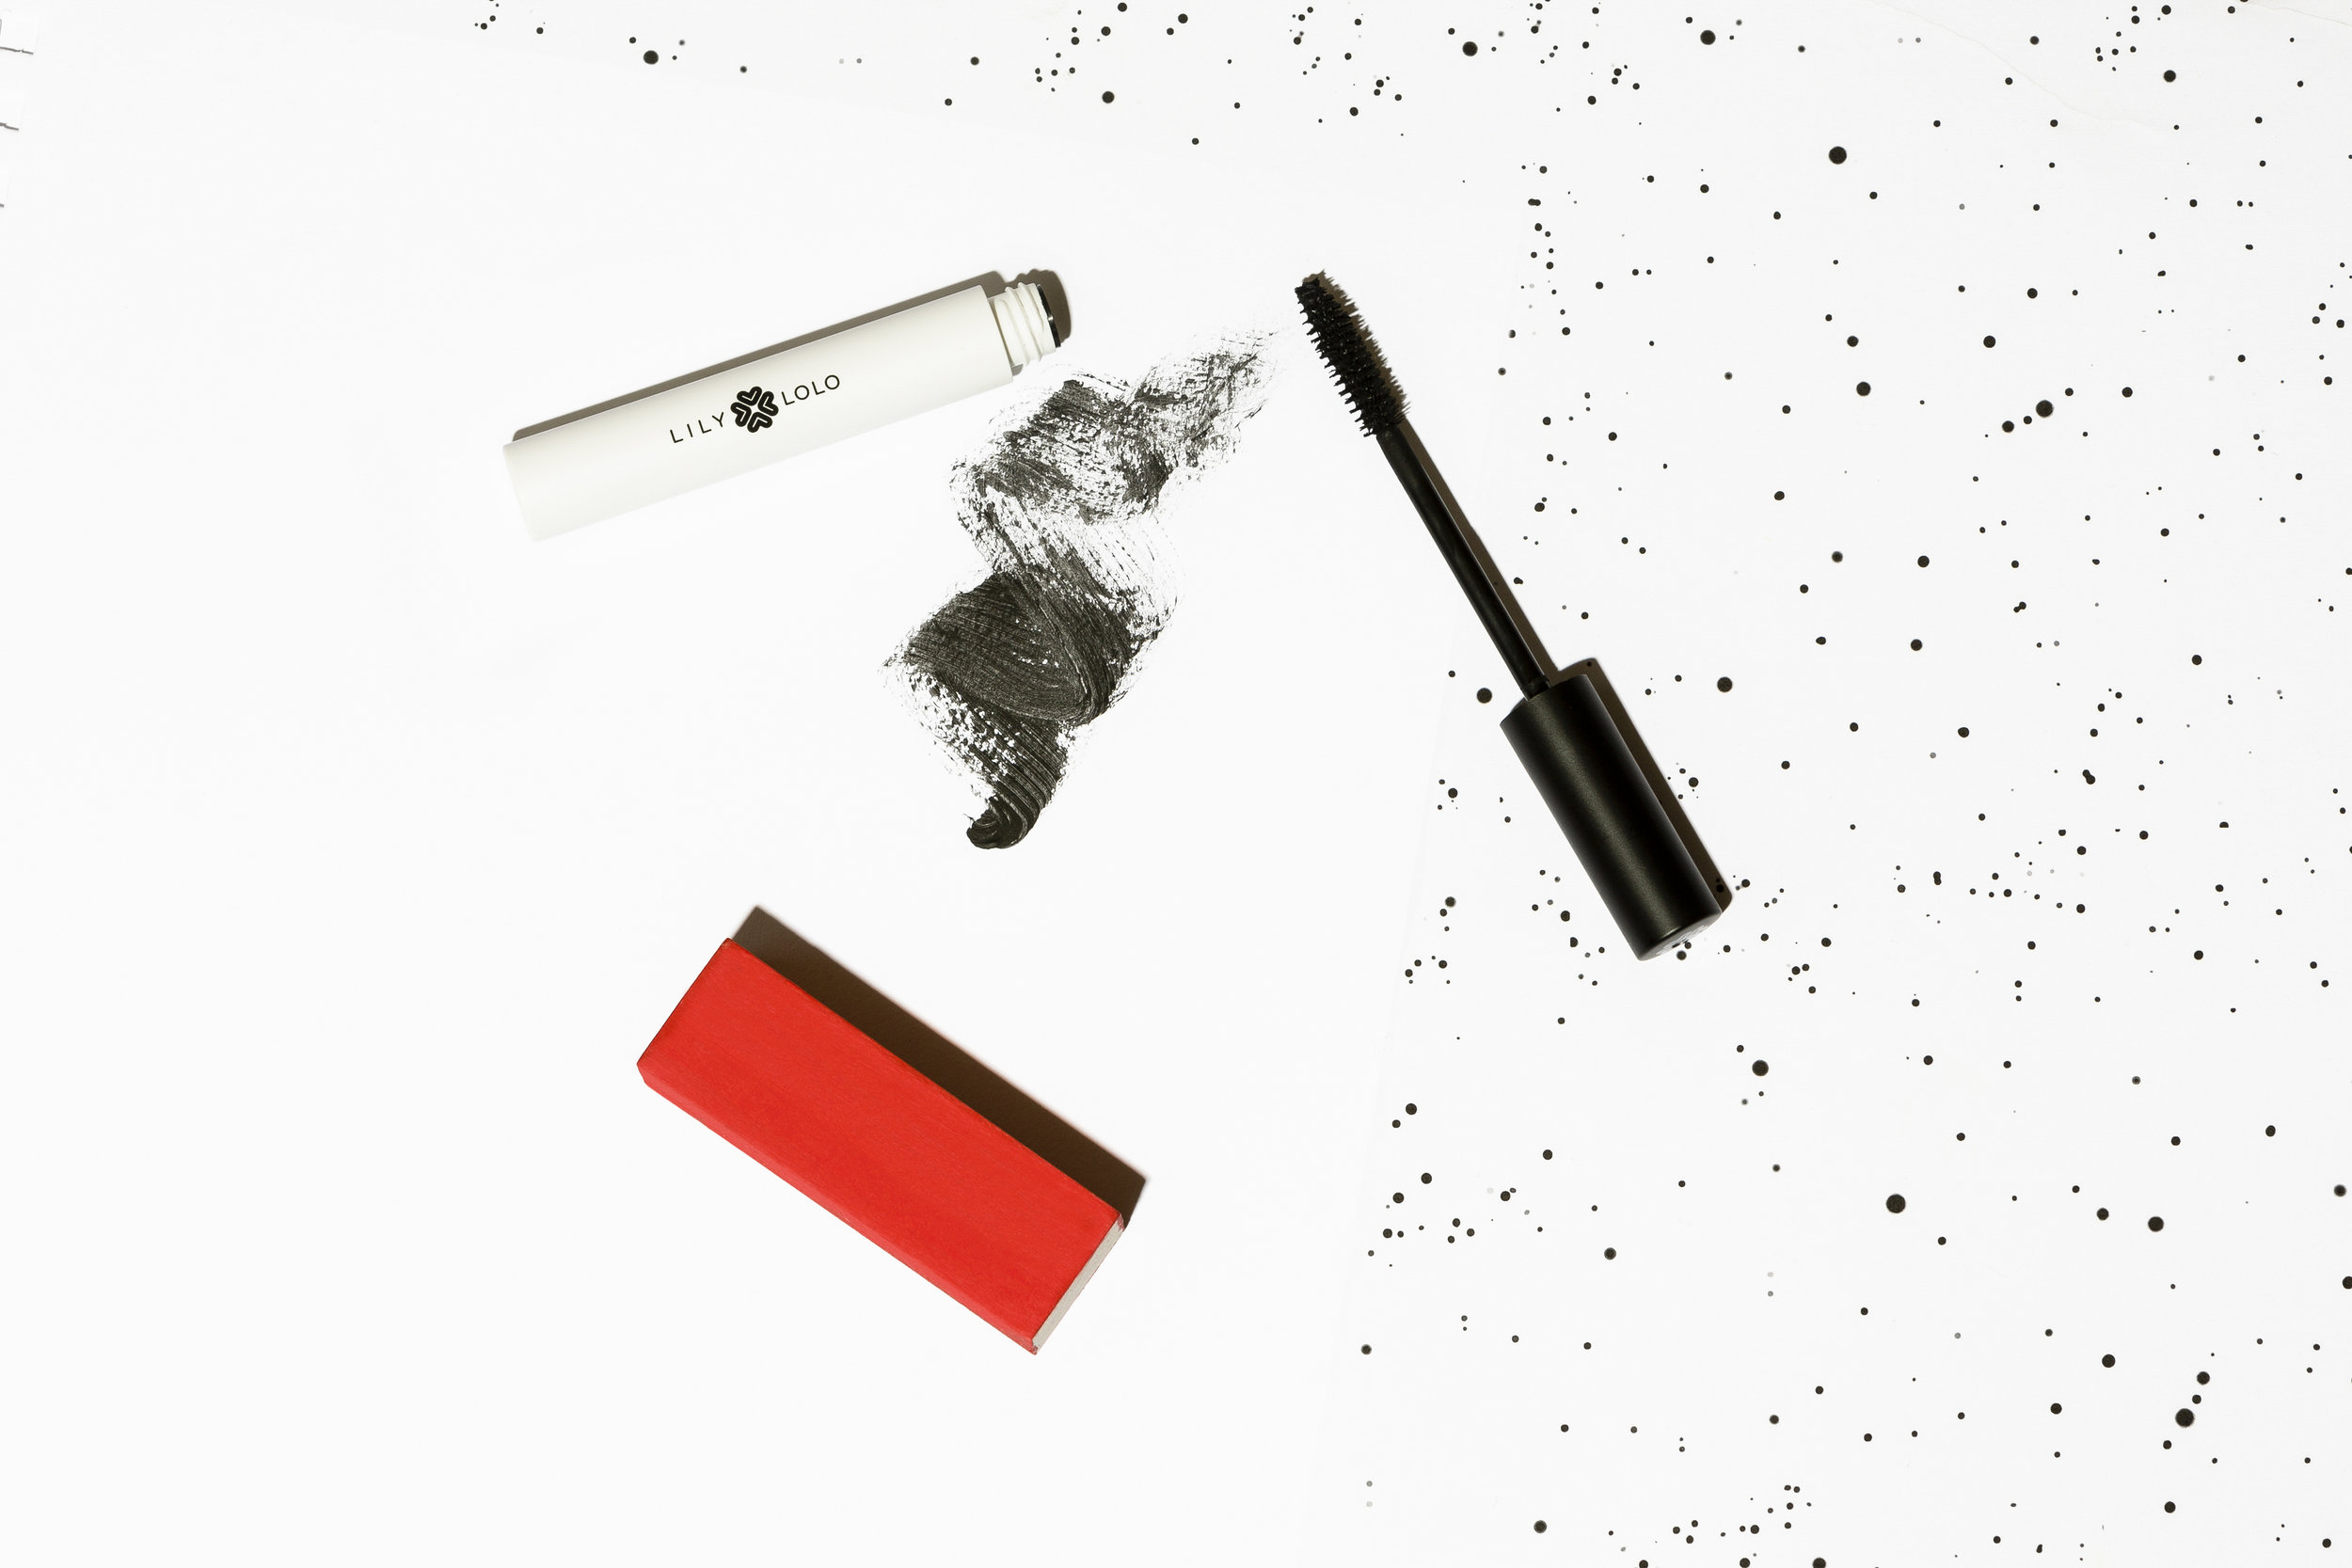 Naked_Poppy_Styled_Makeup_Products_March18_015.jpg